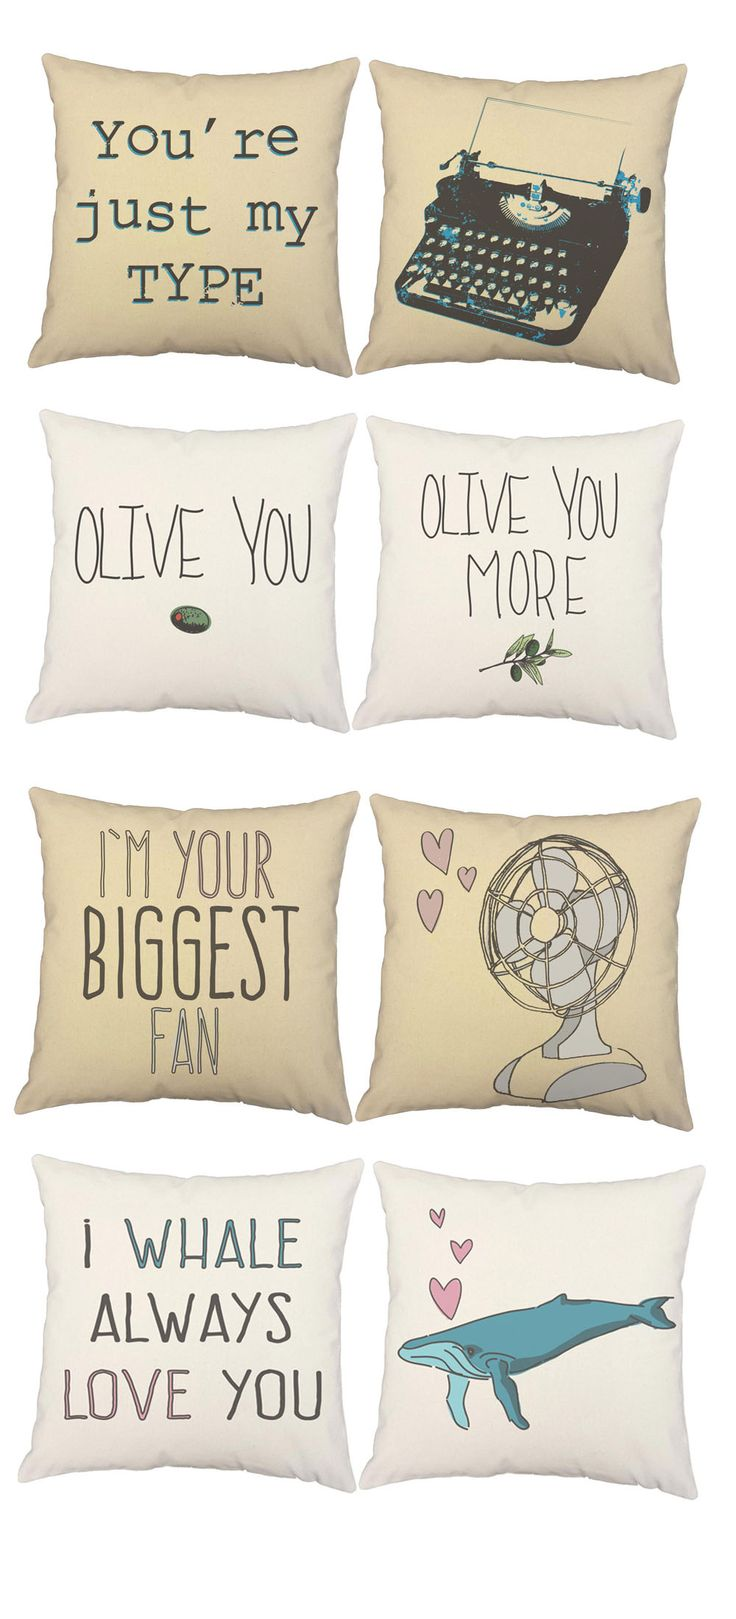 Love Inspired Throw Pillows Romantic Puns Valentines